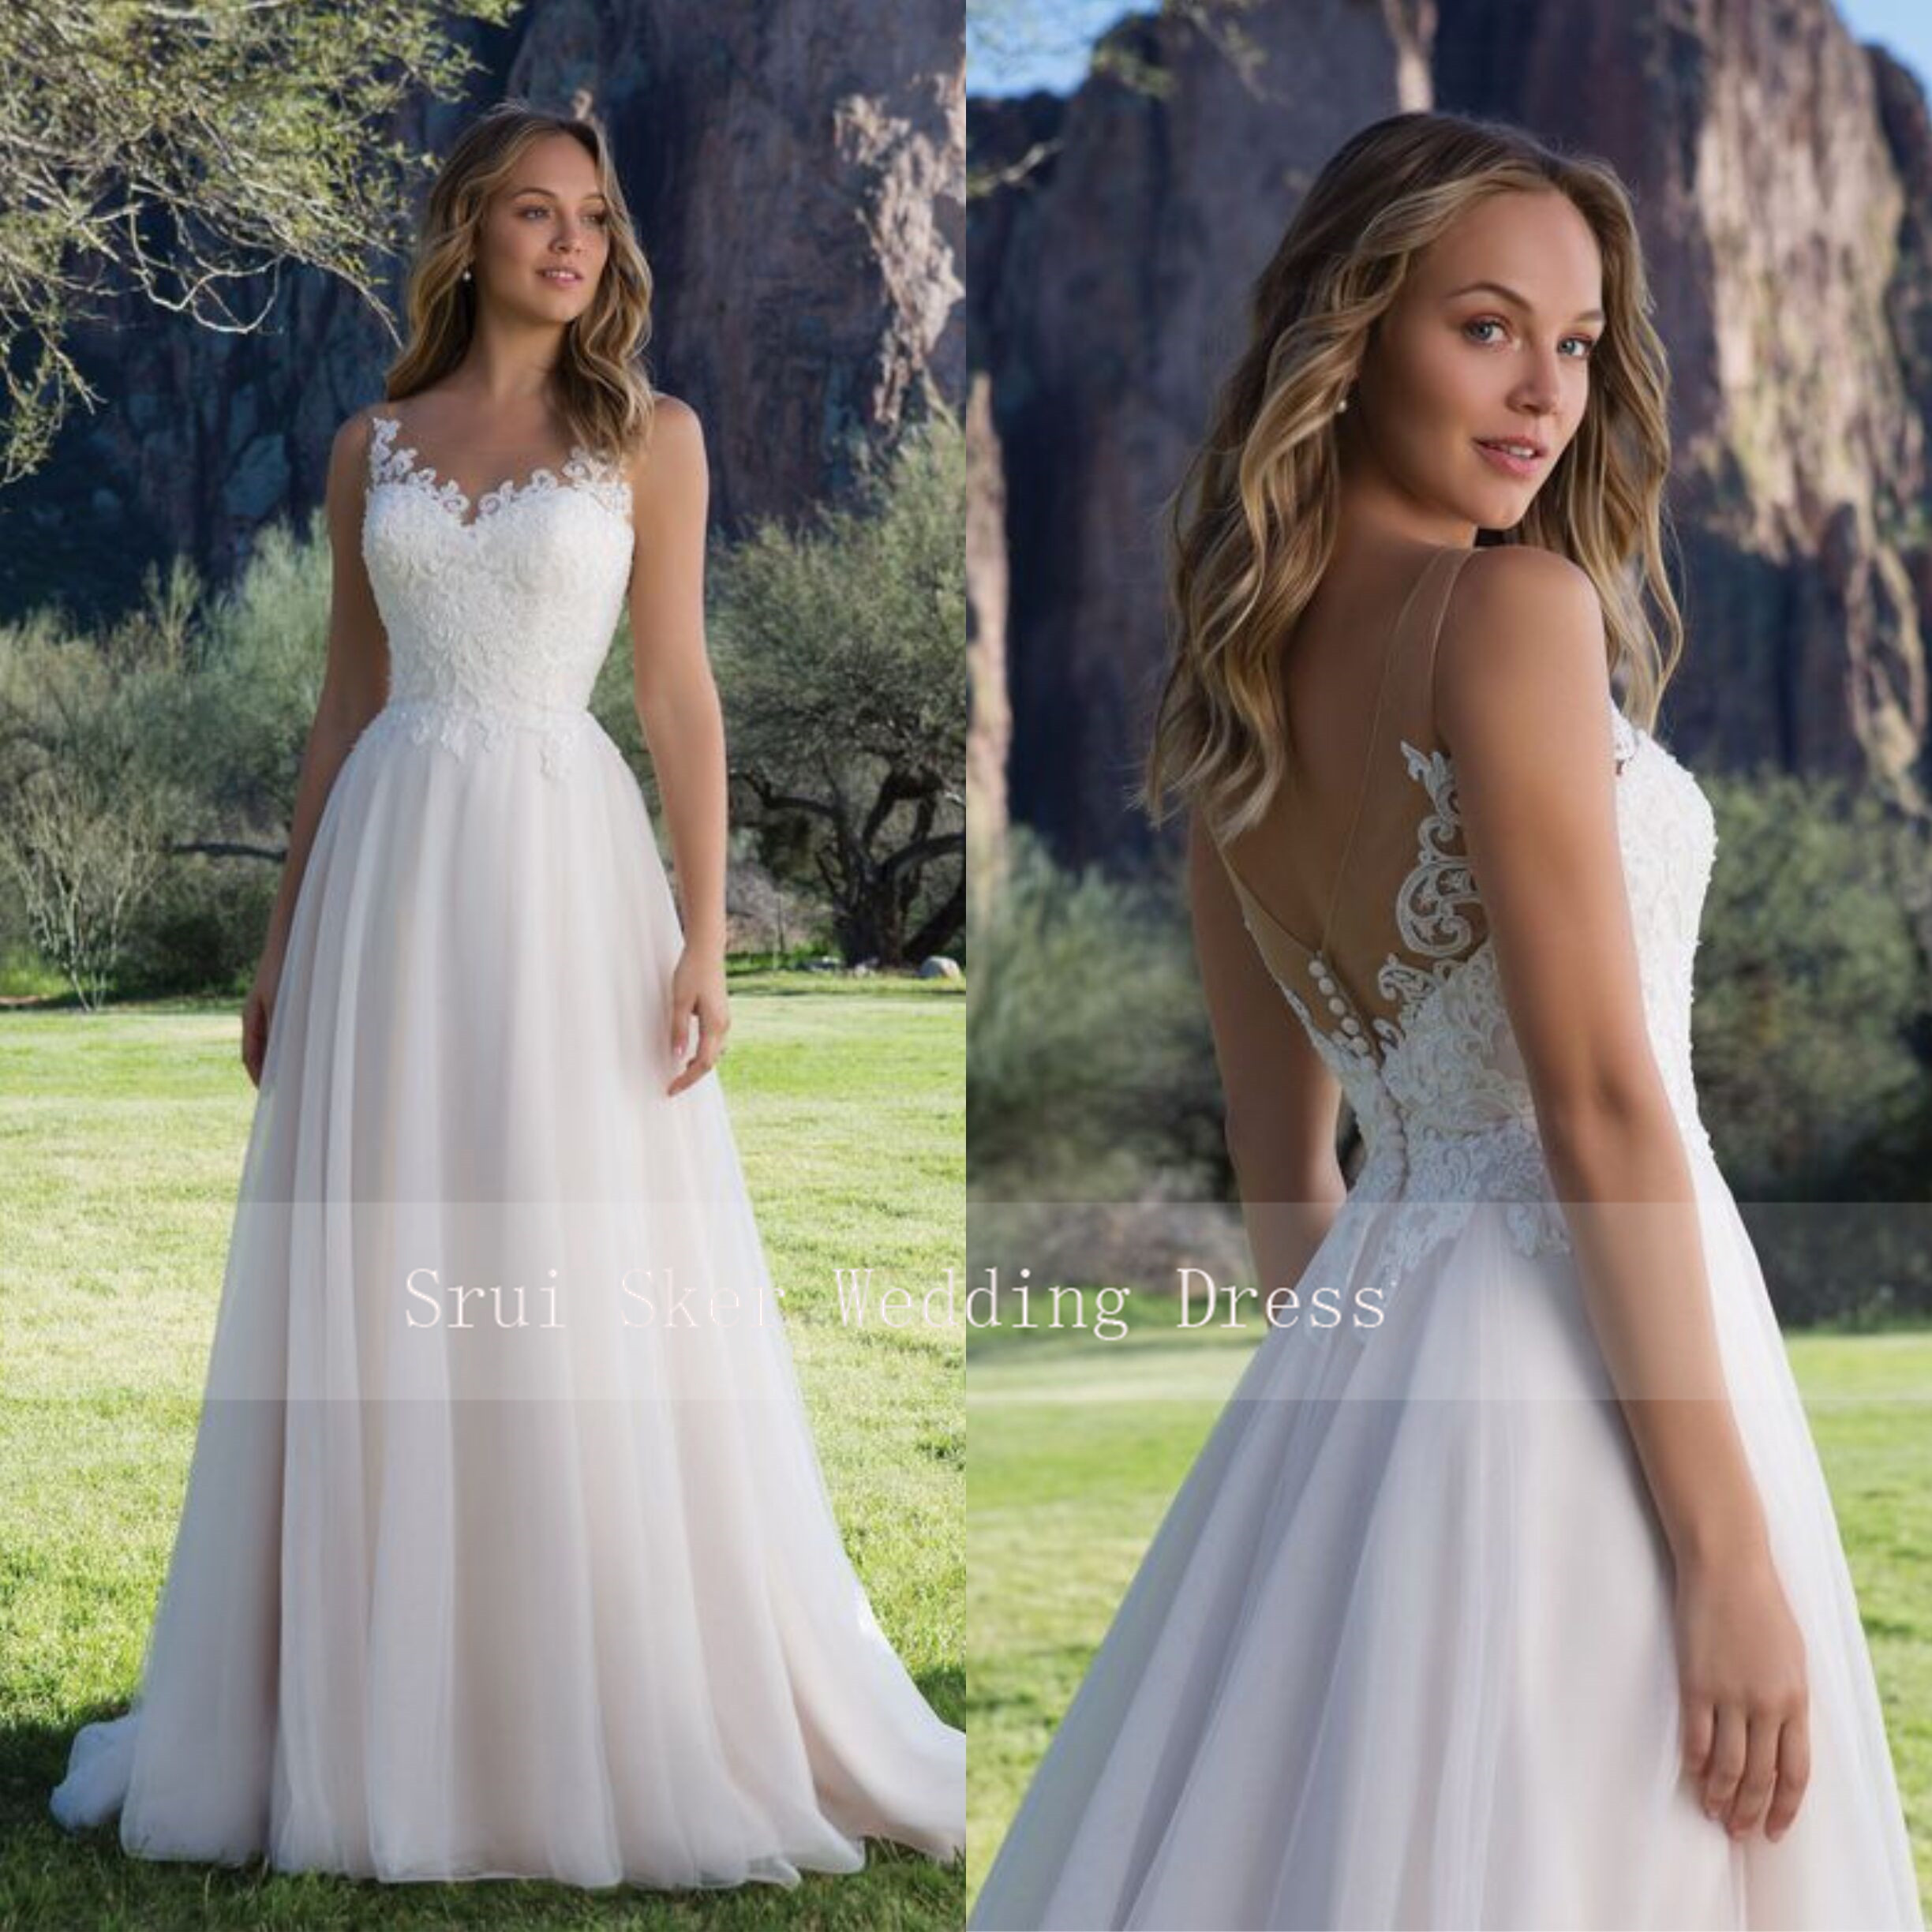 Hot Sale Tulle Wedding Dress A-Line Gown with Scoop Lace Neckline Sleeveless Bridal Gowns 2019 V-Back